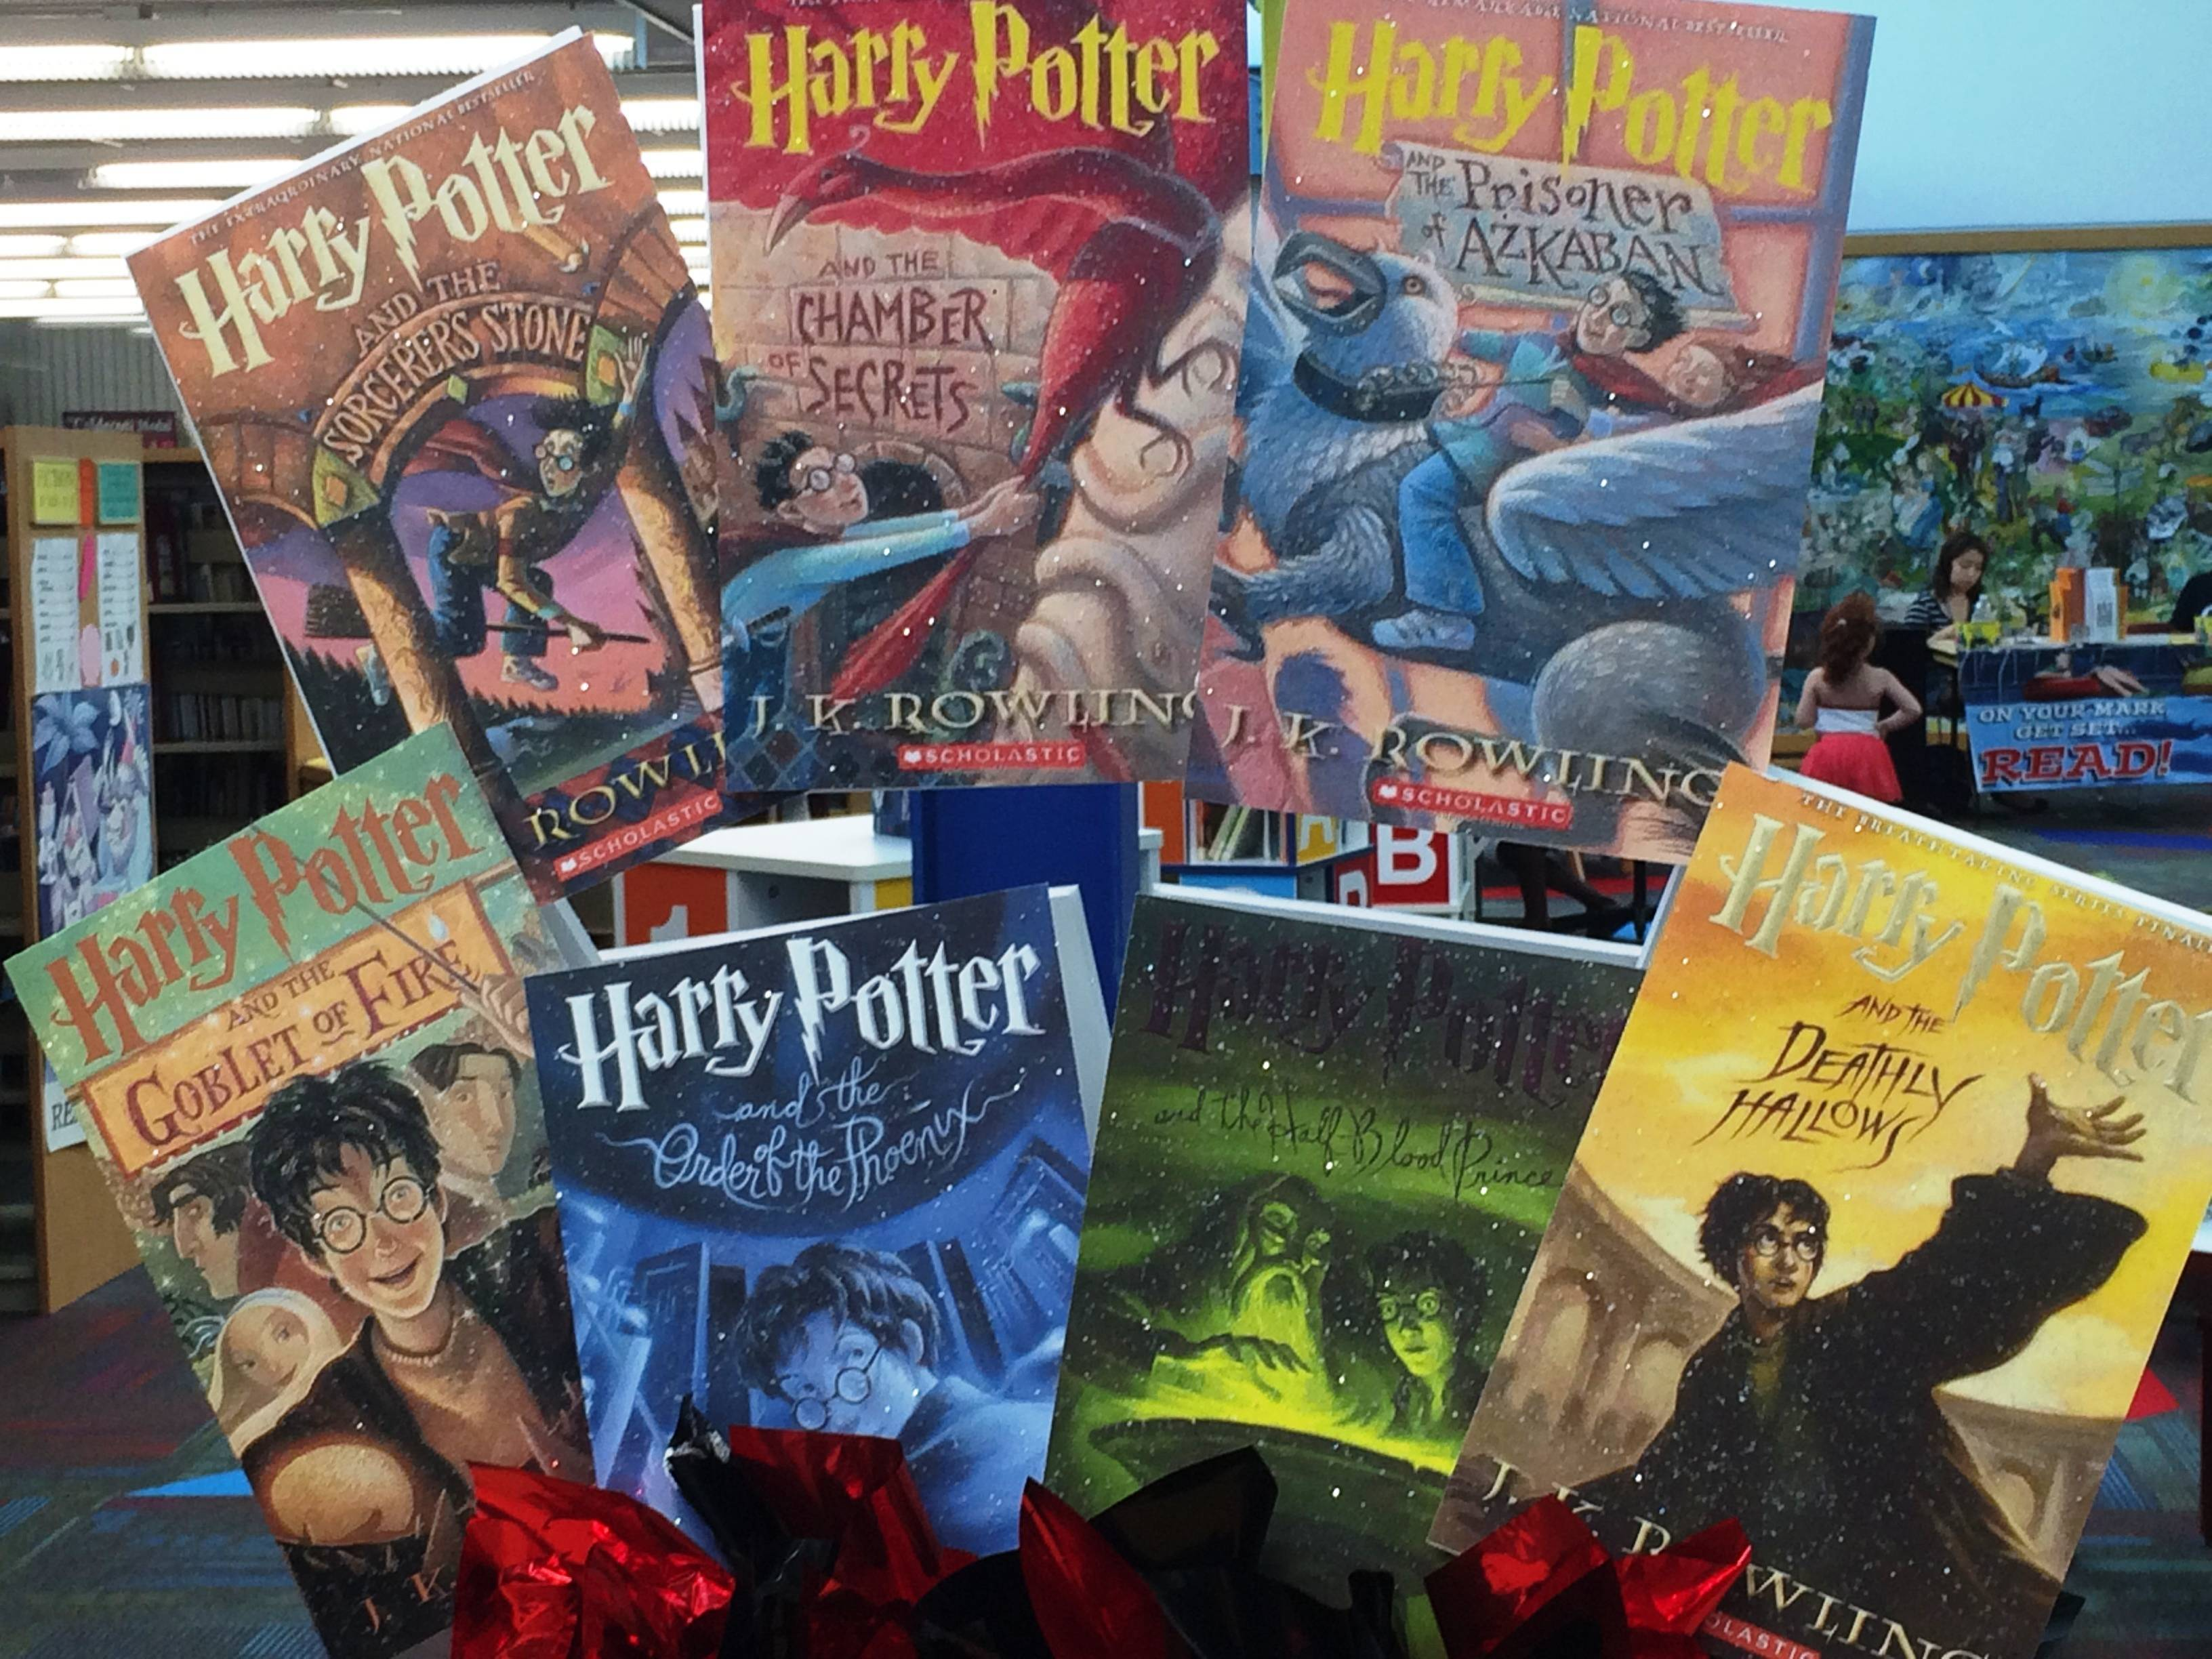 'Harry Potter' midnight release party at Fairfield bookstore